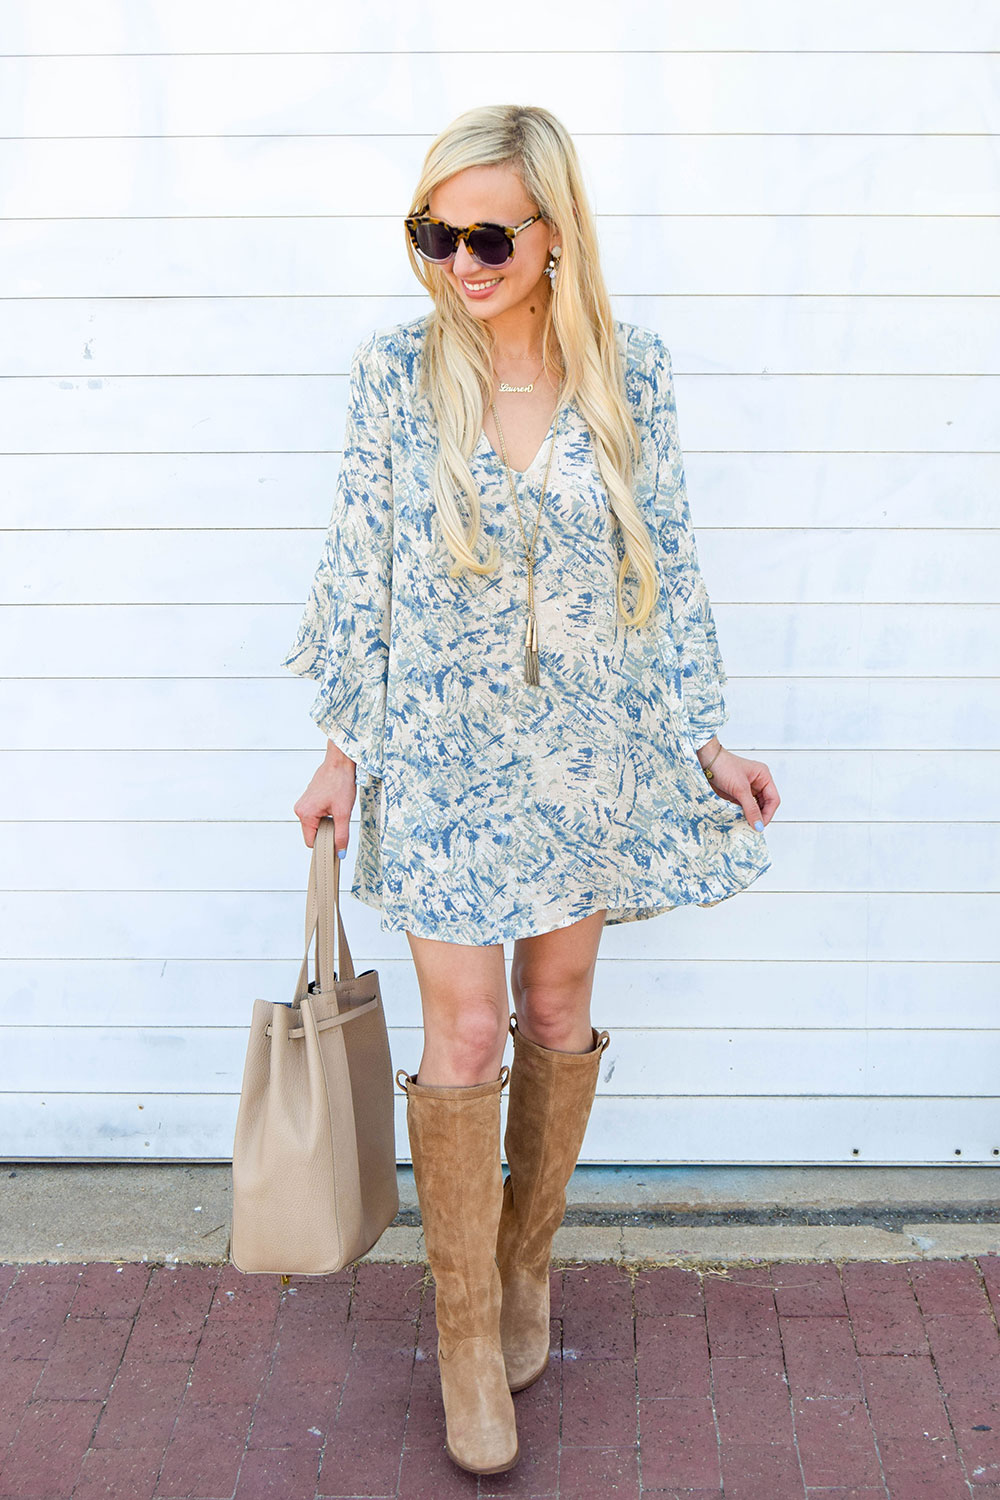 vandi-fair-dallas-fashion-blog-lauren-vandiver-southern-blogger-lush-whitney-bell-sleeve-woven-shift-dress-open-back-ugg-ava-tall-water-resistant-suede-boot-chestnut-14